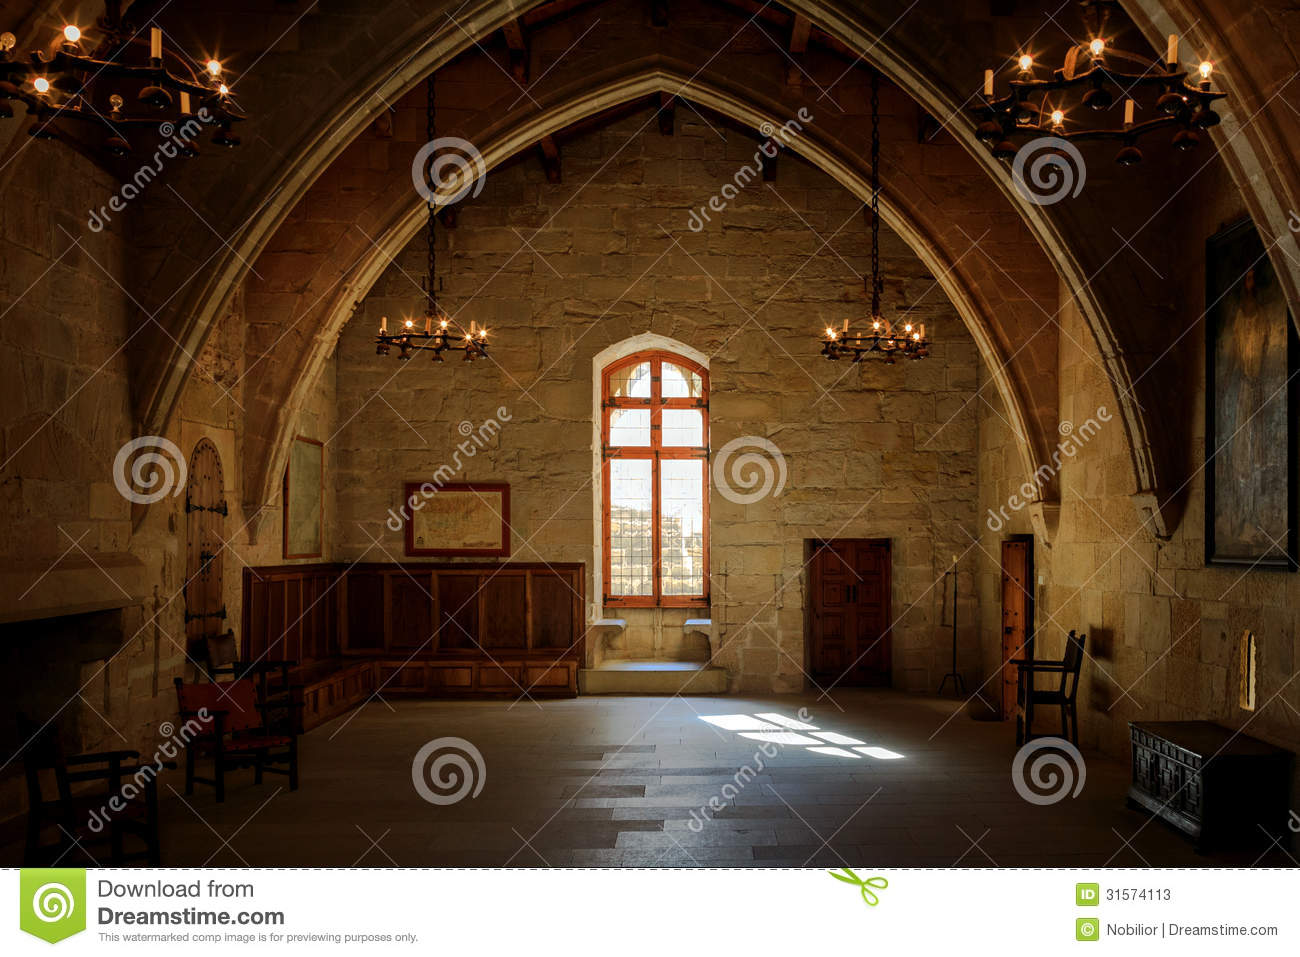 Empty room with window and door - Dark Old Room In Poblet Cloister With Stained Glass Window And